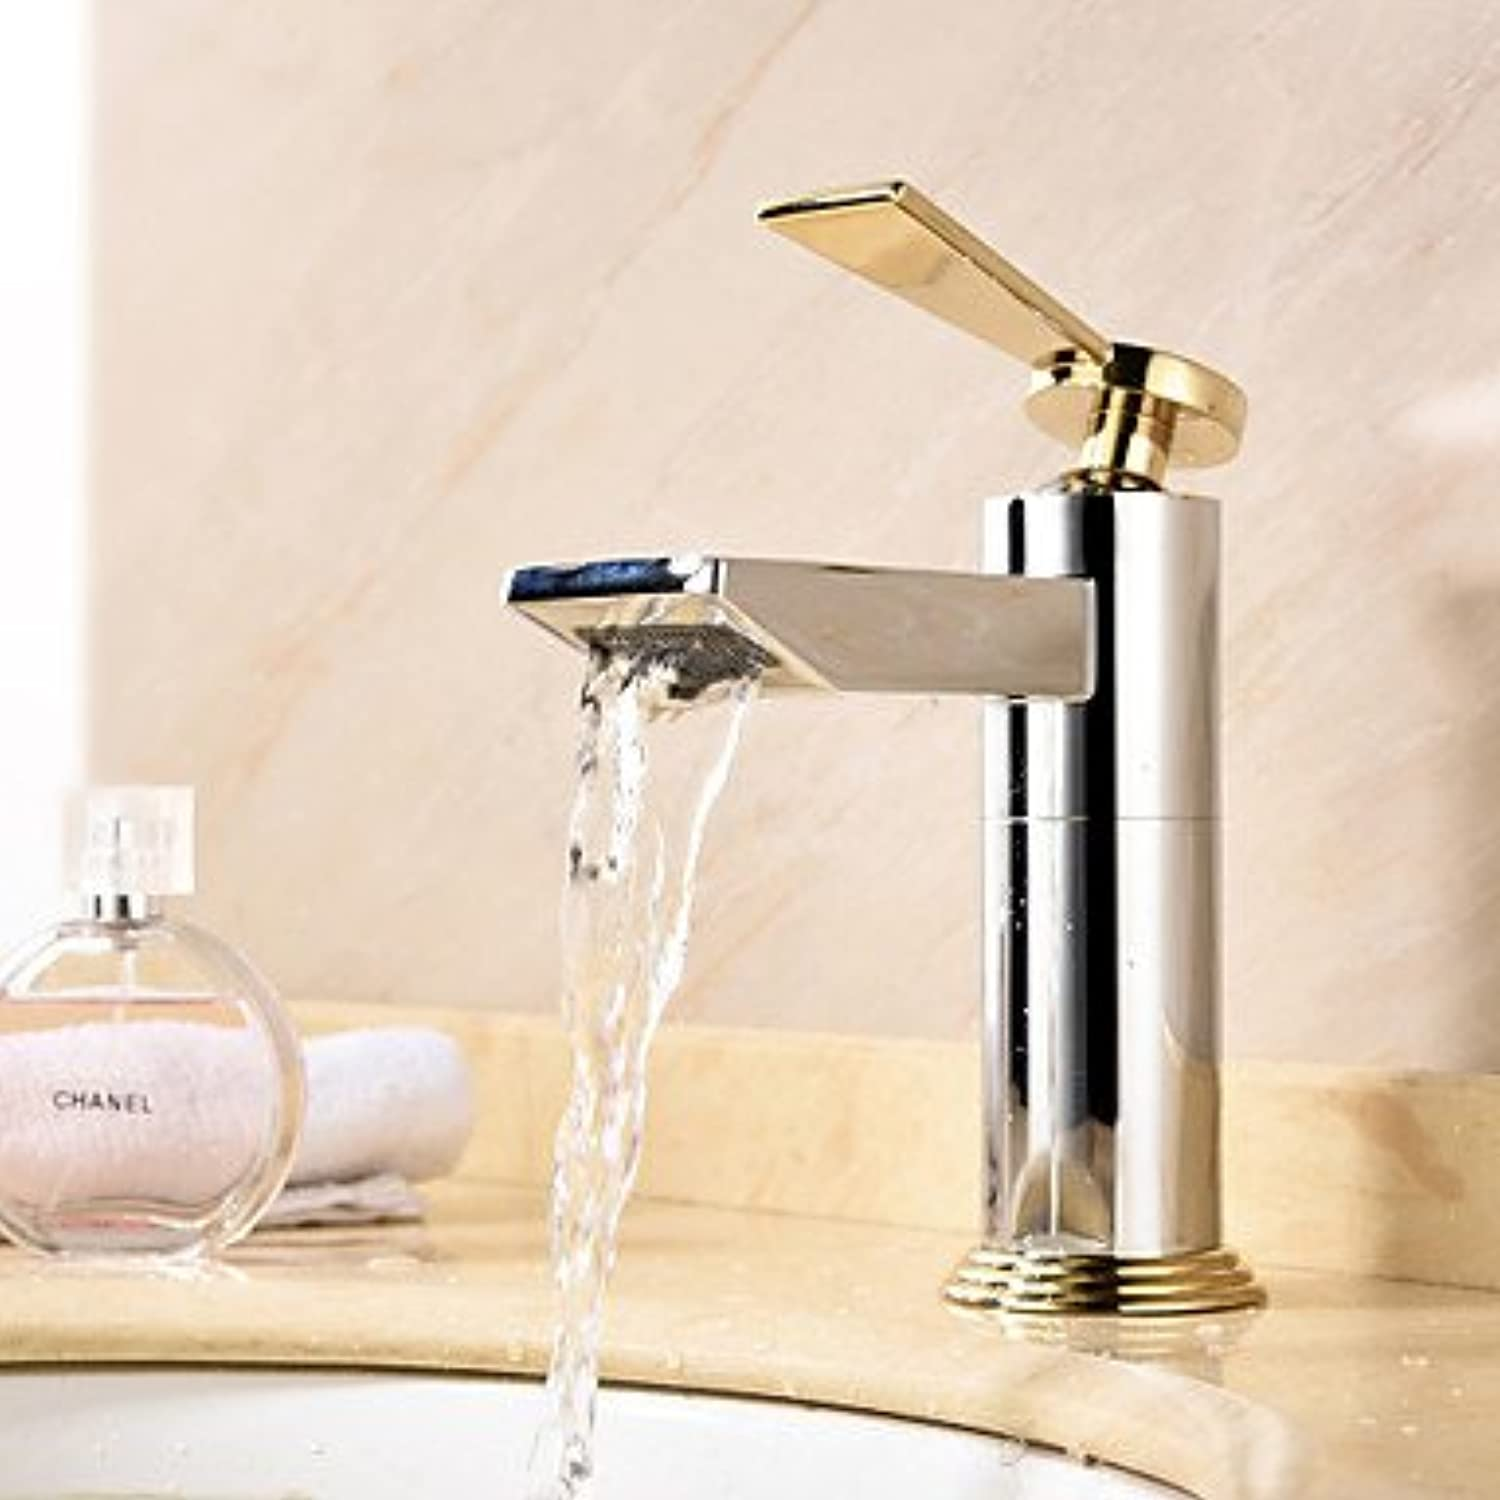 SUNNY KEY-Bathroom Sink Taps@Centerset single-lever Chrome bathroom sink faucets single hole , white+golden